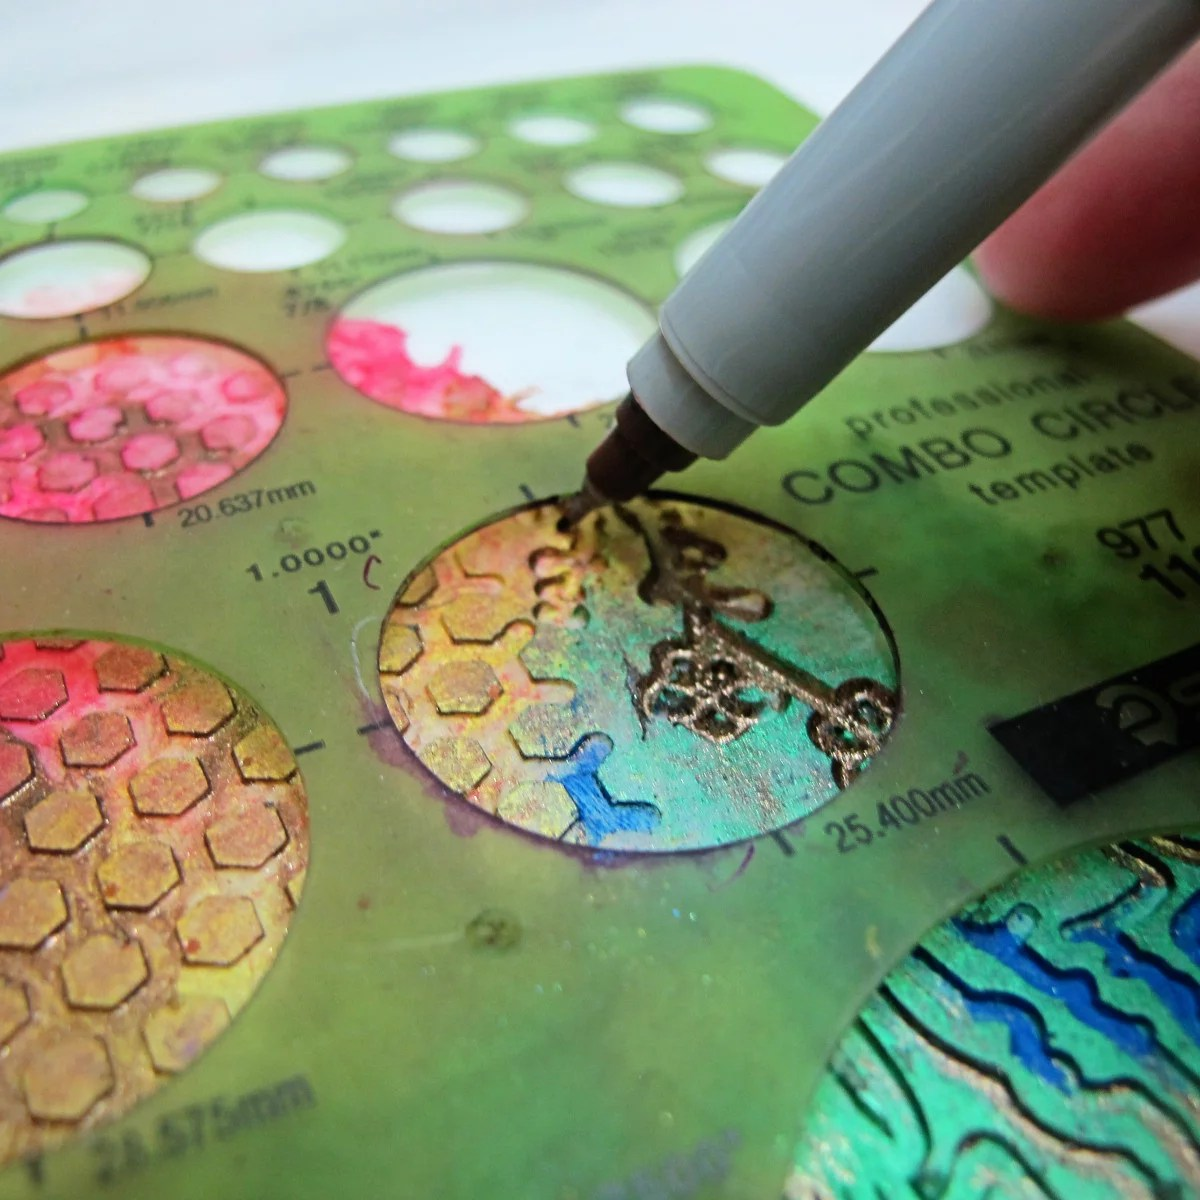 tracing circle onto resin using template